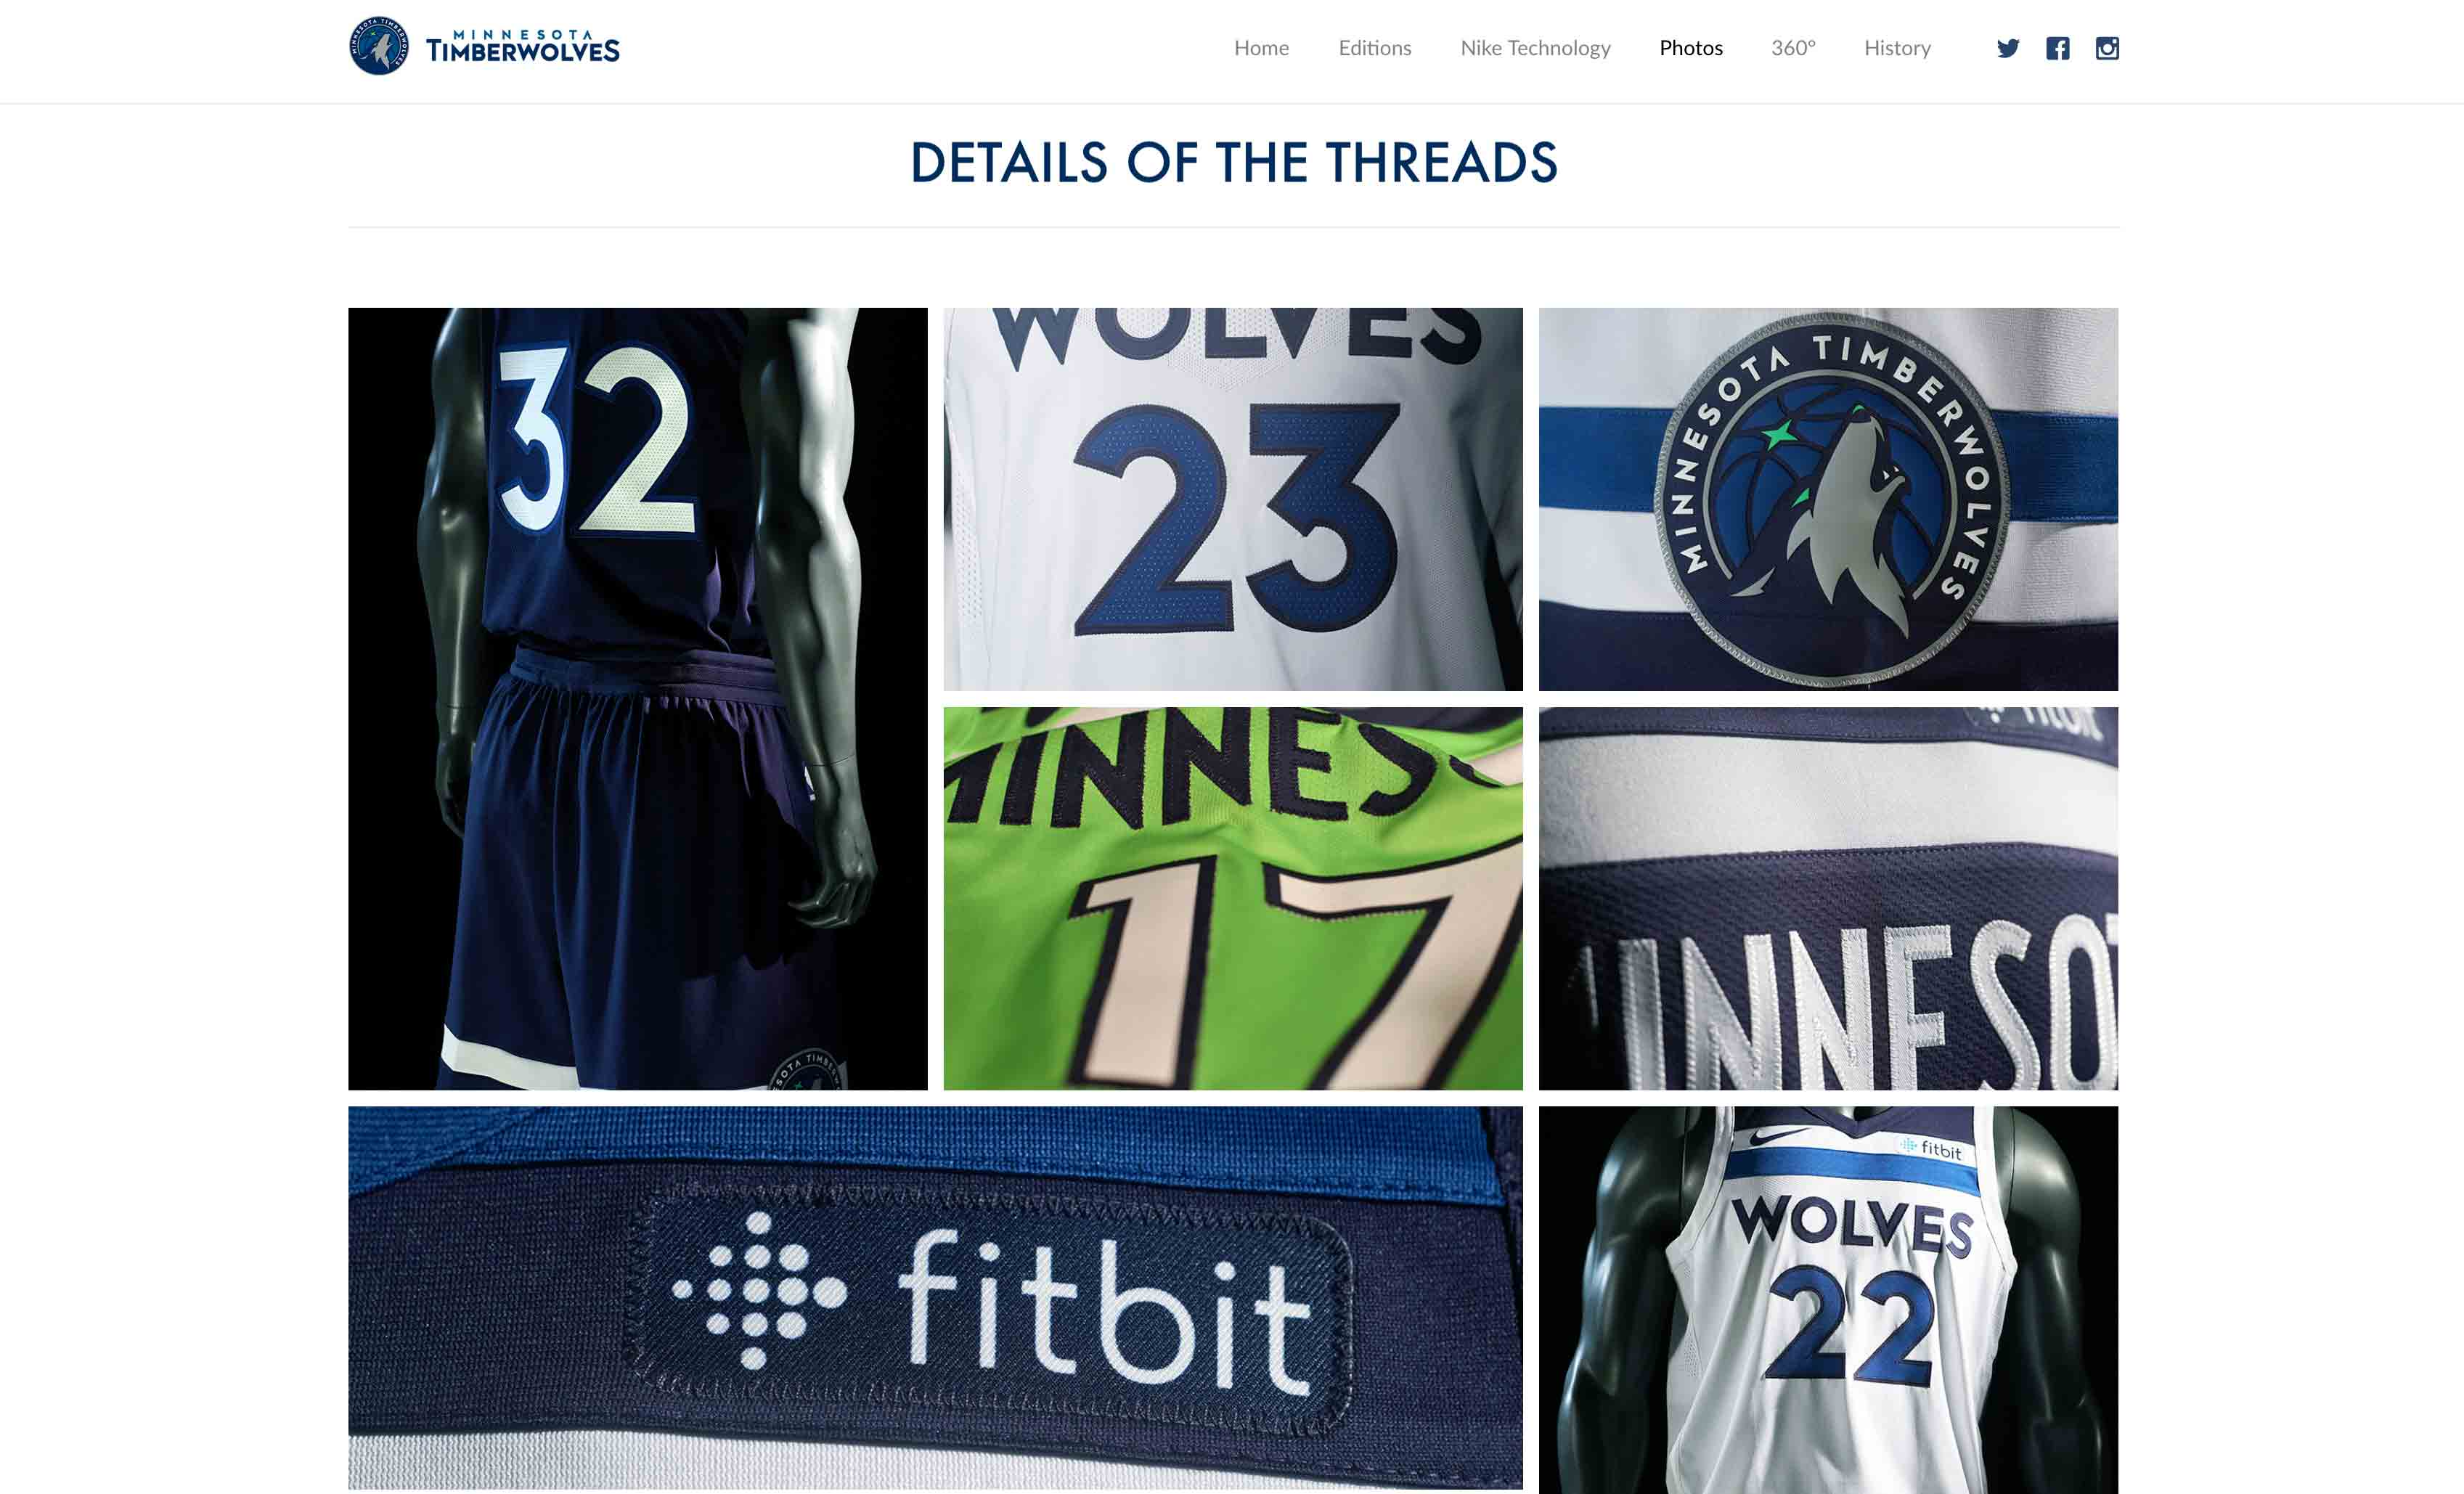 MN Timberwolves New Threads Project: Desktop View, Photo Gallery Section